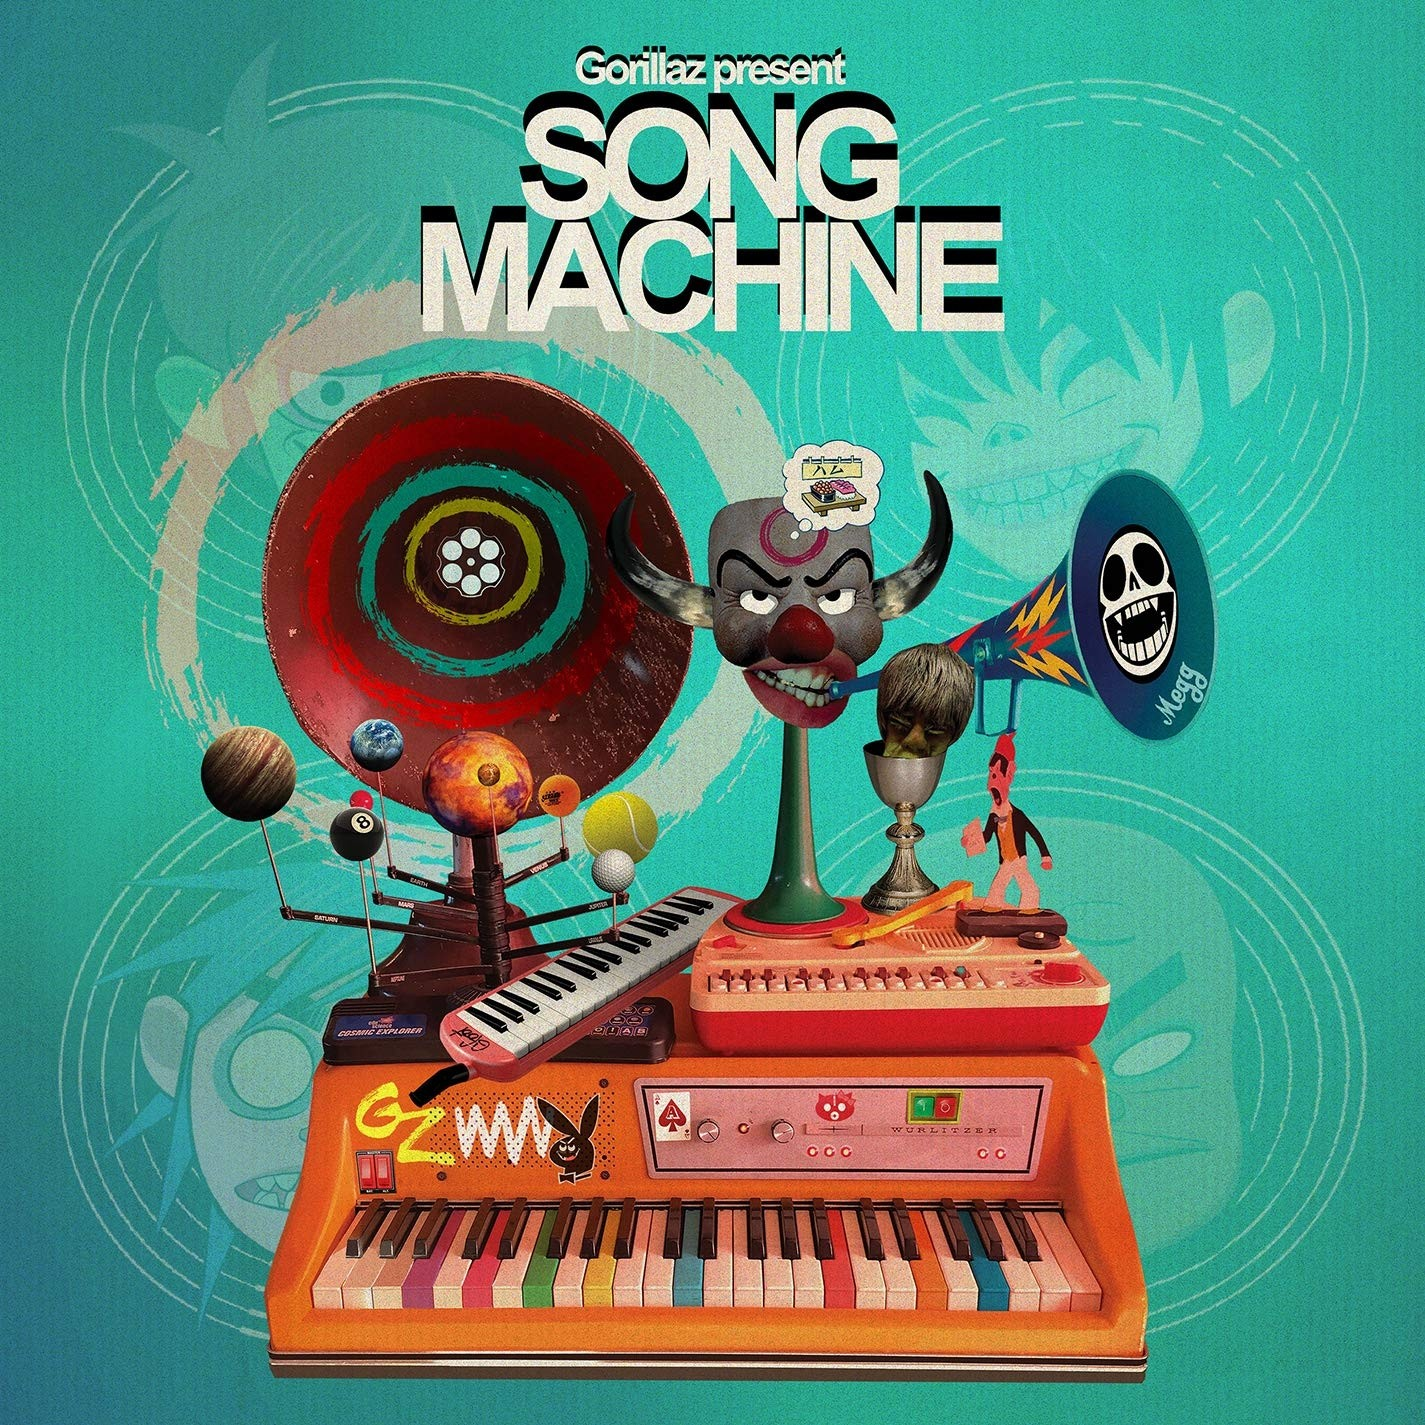 Gorillaz - Song Machine, Season One Vinyl LP